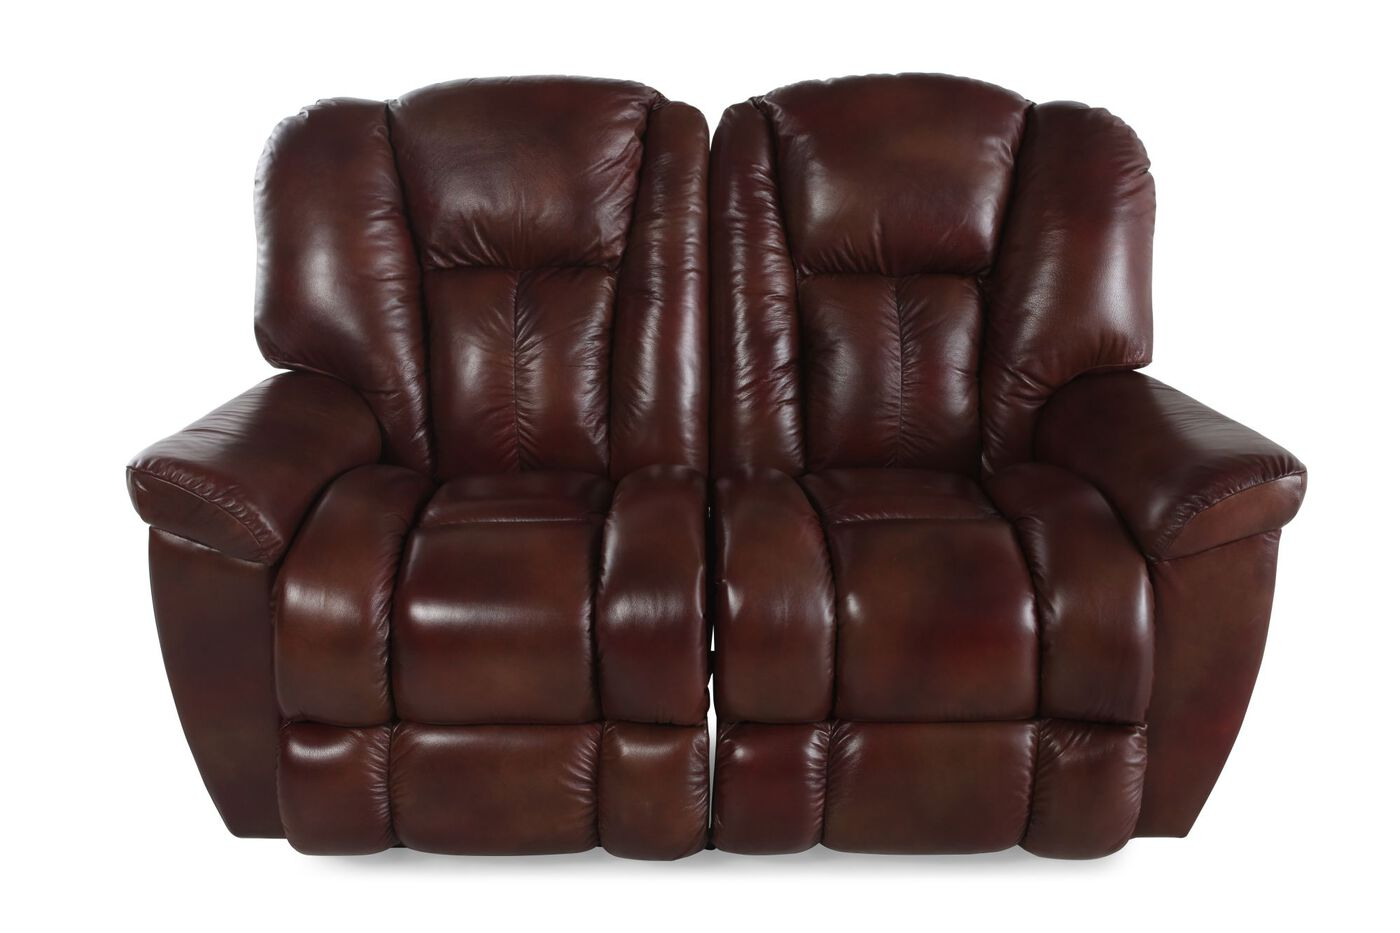 to eurway loveseats leather modern loveseat call empire tan contemporary order